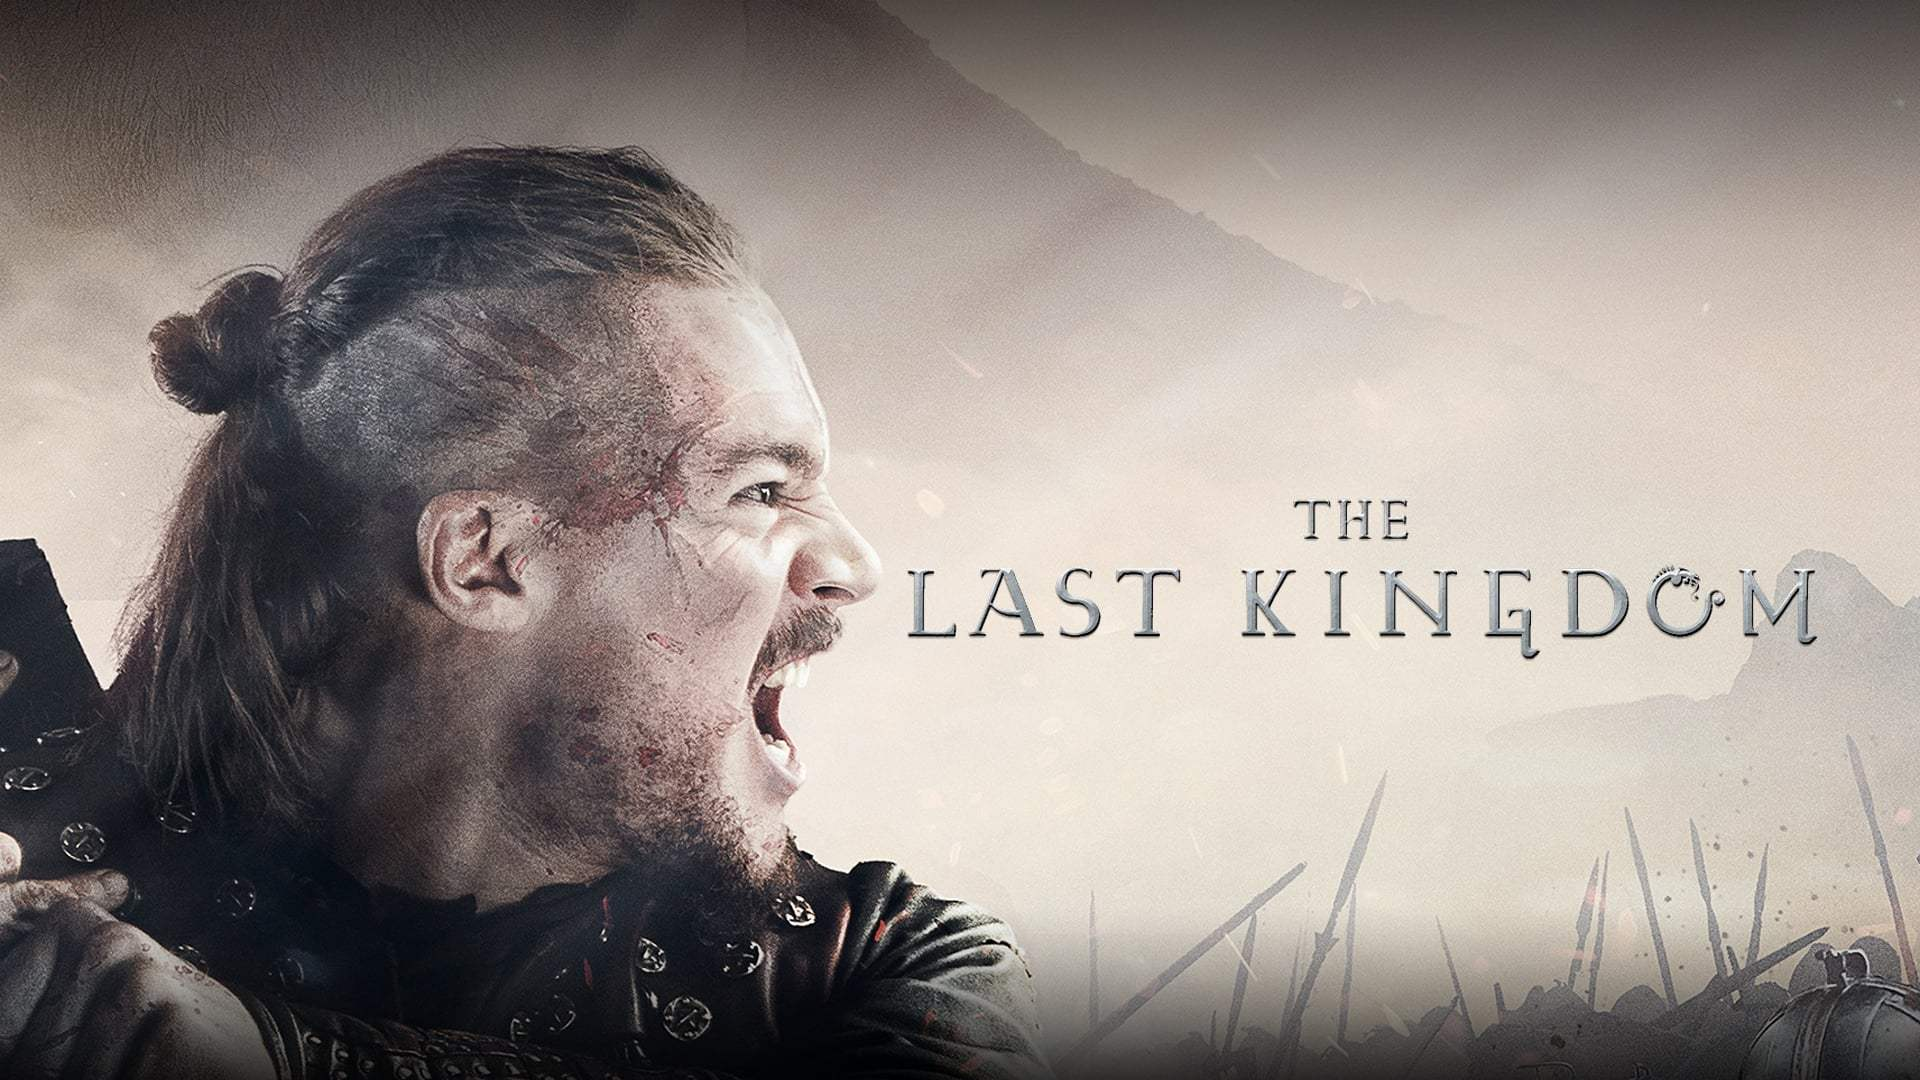 The Last Kingdom Season 5 Release Date, Cast & More - Here Is Everything We Know So Far